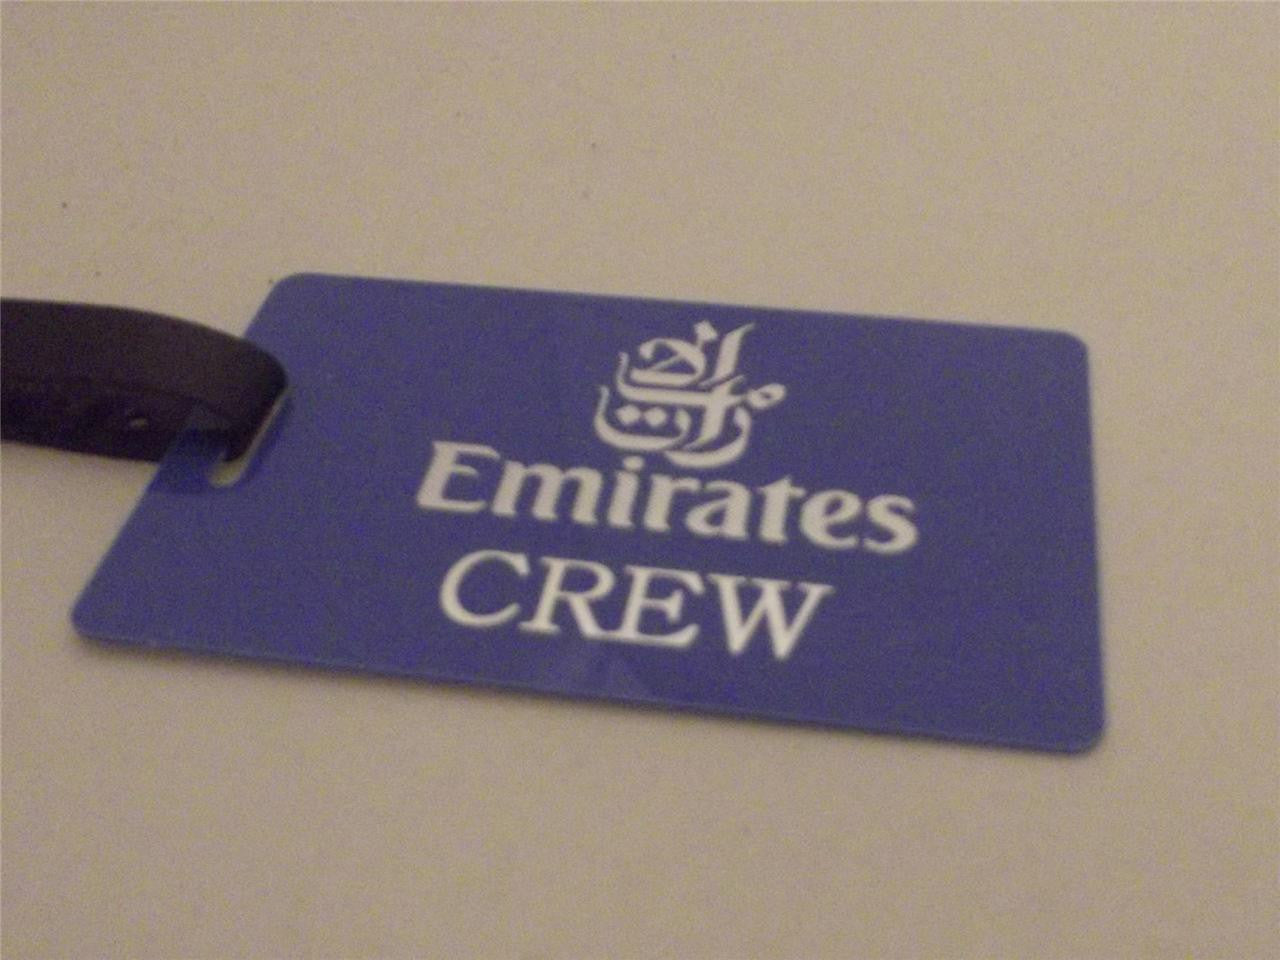 Novelty Luggage Crew Tags - Emirates Crew, Various Colours -  Inflightgoods   - 3